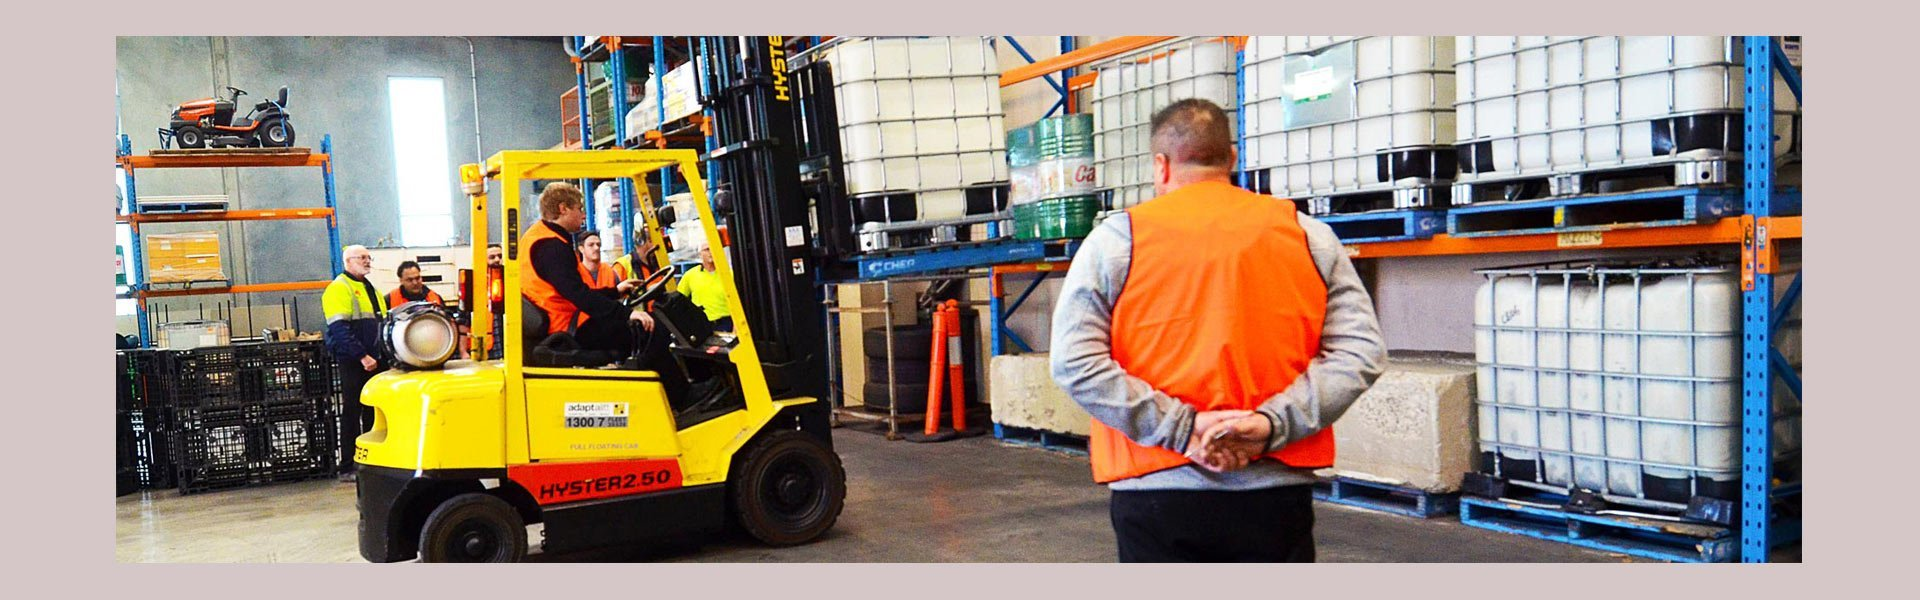 australia wide forklift training center instructor over seeing forklift trainee